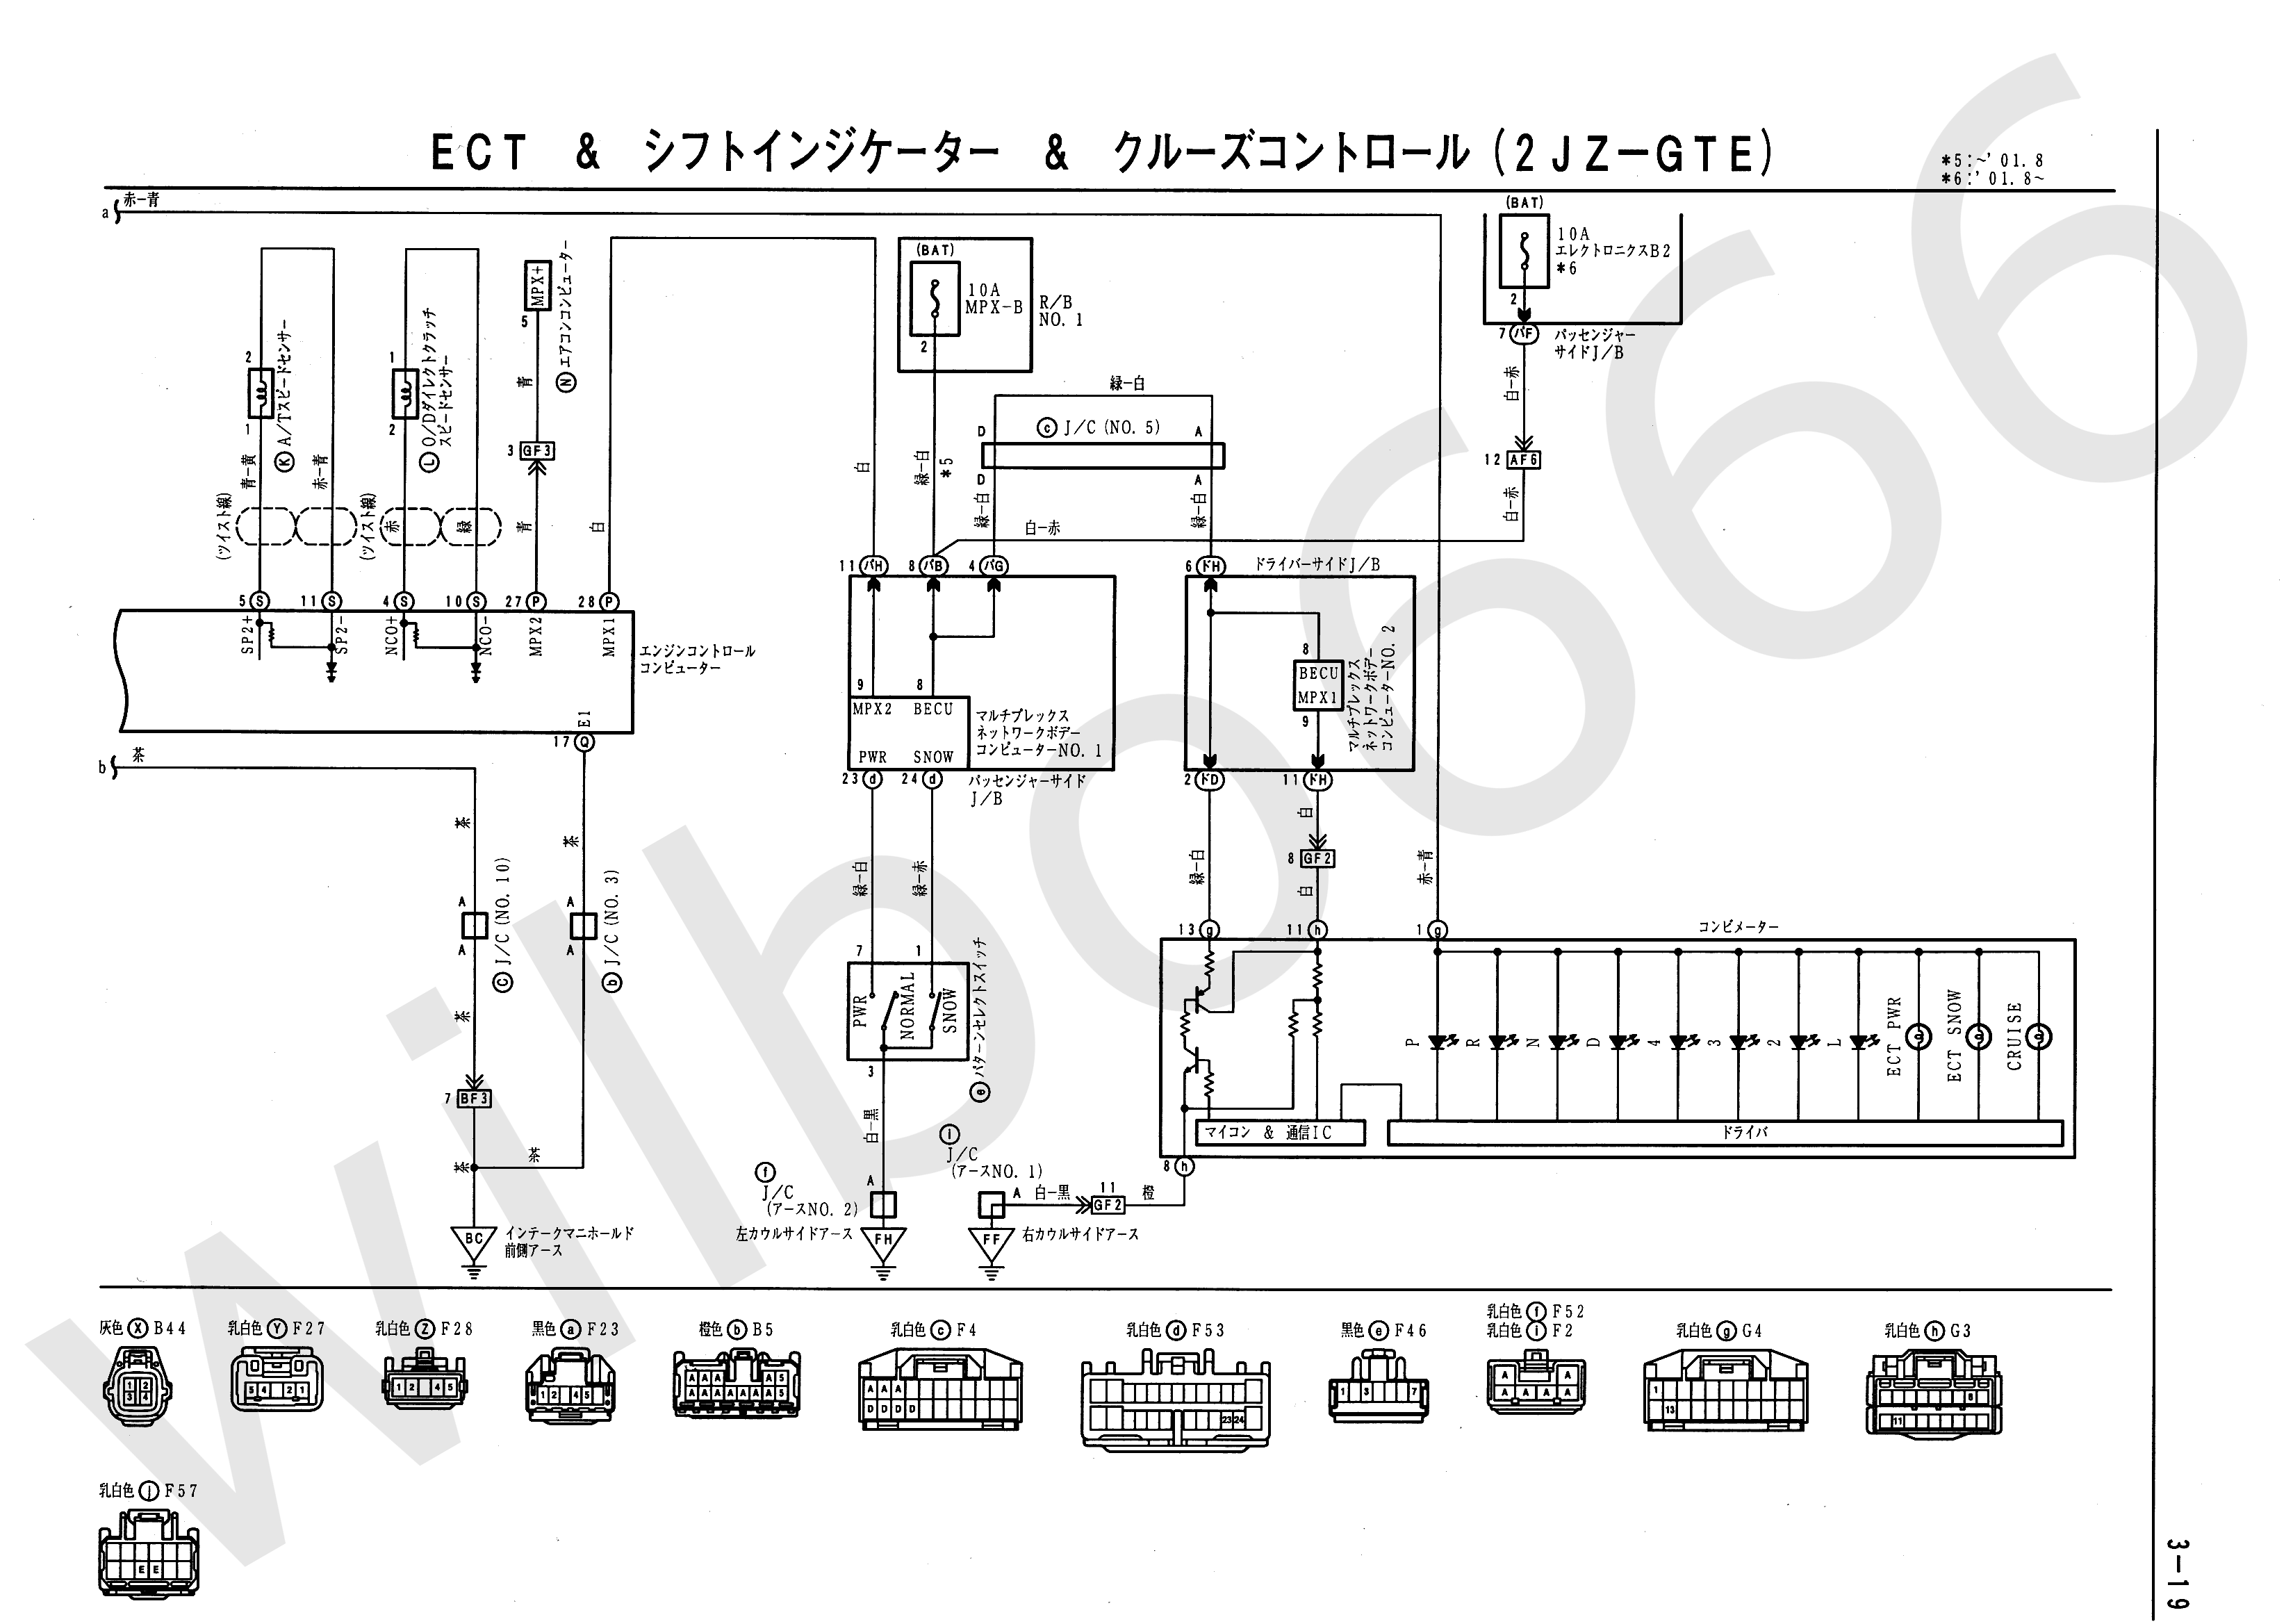 JZS161 Electrical Wiring Diagram 6748505 3 19 wilbo666 2jz gte vvti jzs161 aristo engine wiring 2jz wiring diagram at cita.asia